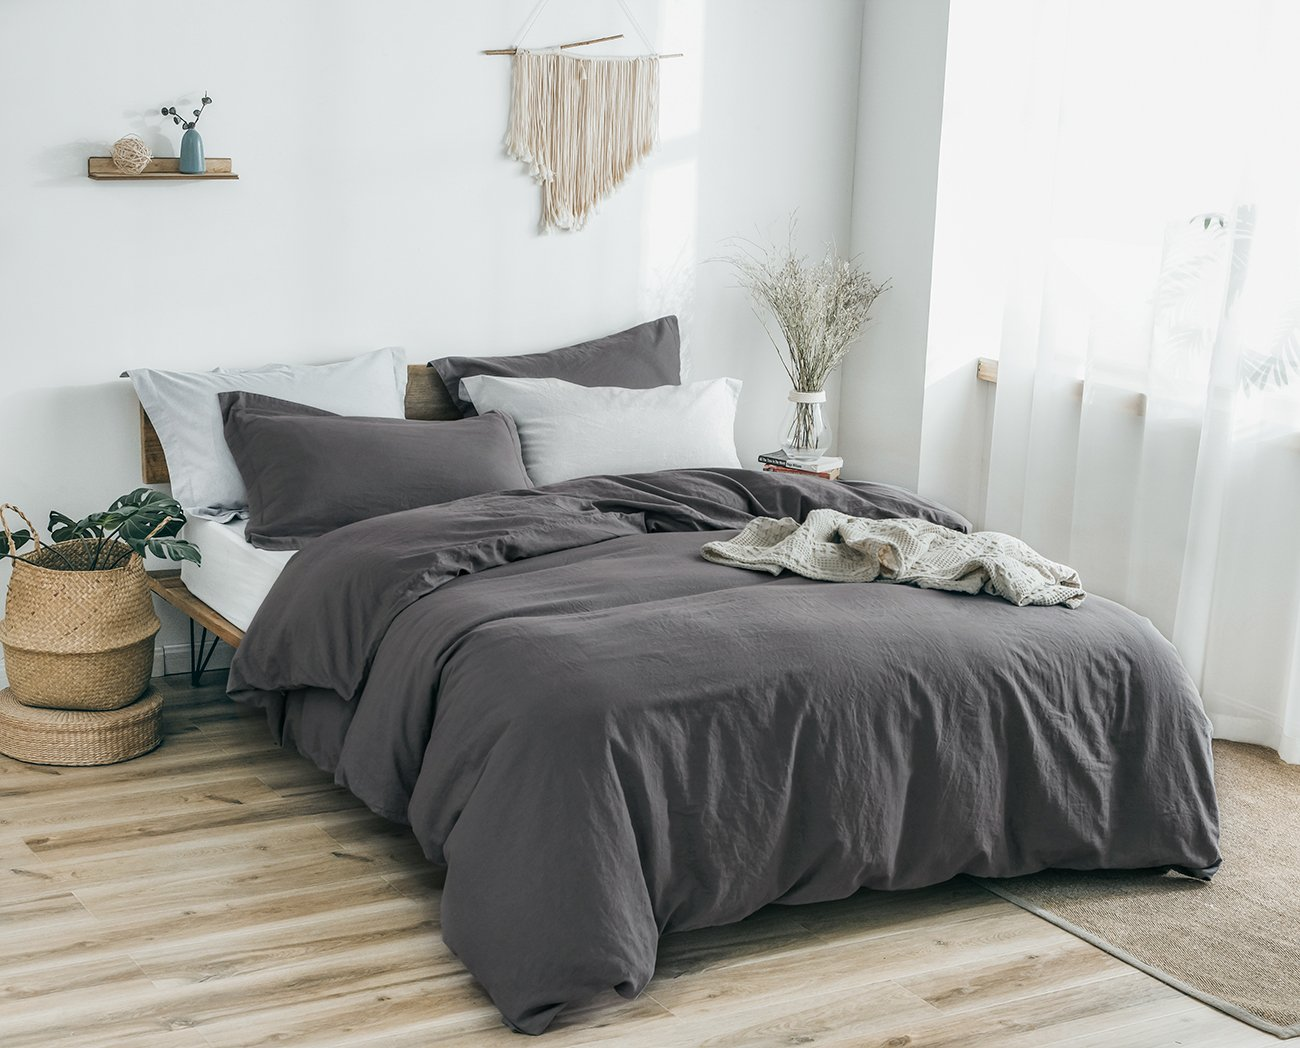 PHF Washed Linen Cotton Duvet Cover and 2 Pillowshams Luxury Soft Vintage Bedding Set for Winter King Size Charcoal